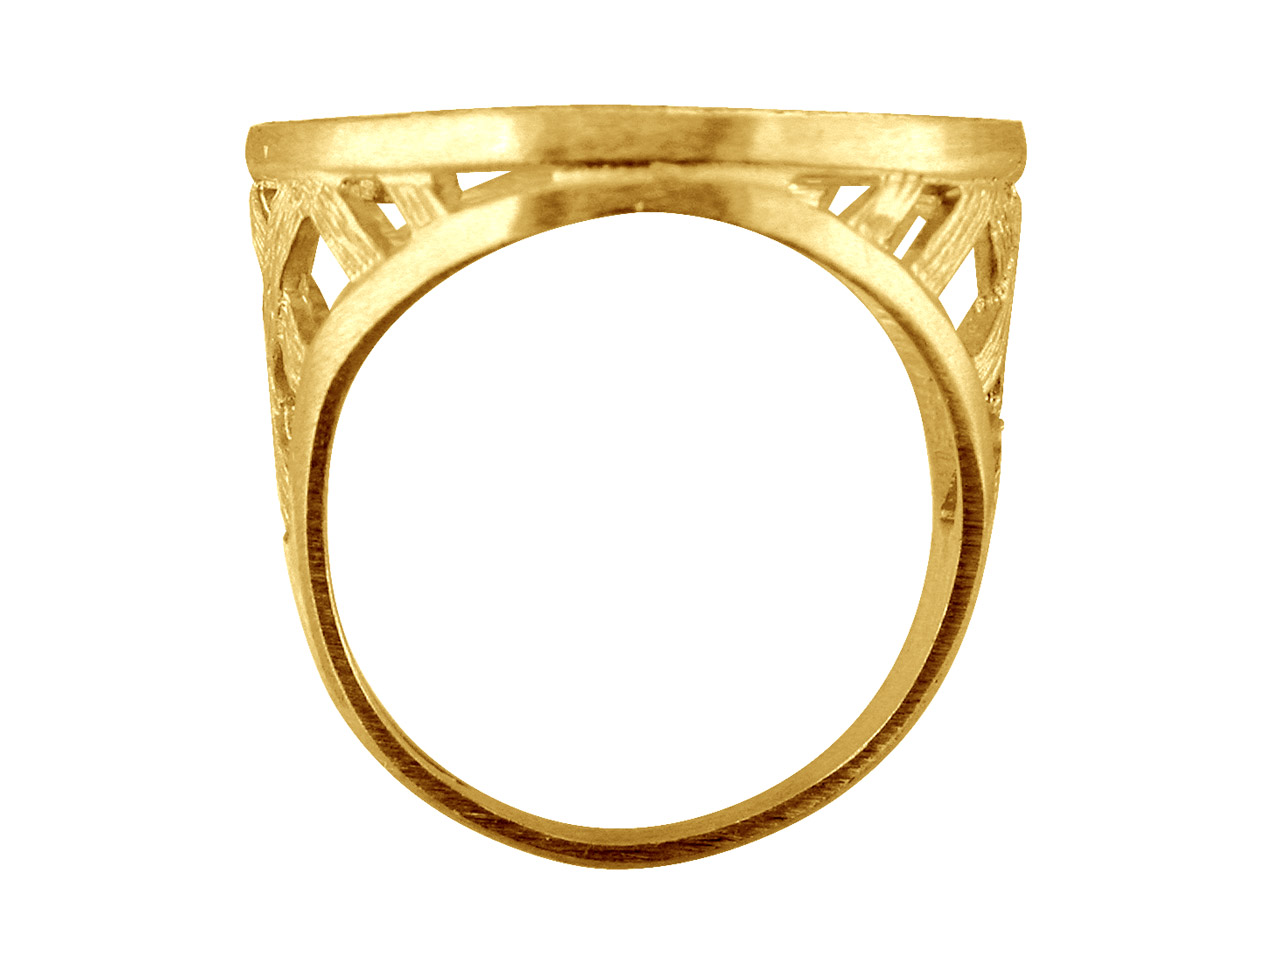 ring george banks rings sovereign jewellers gold img